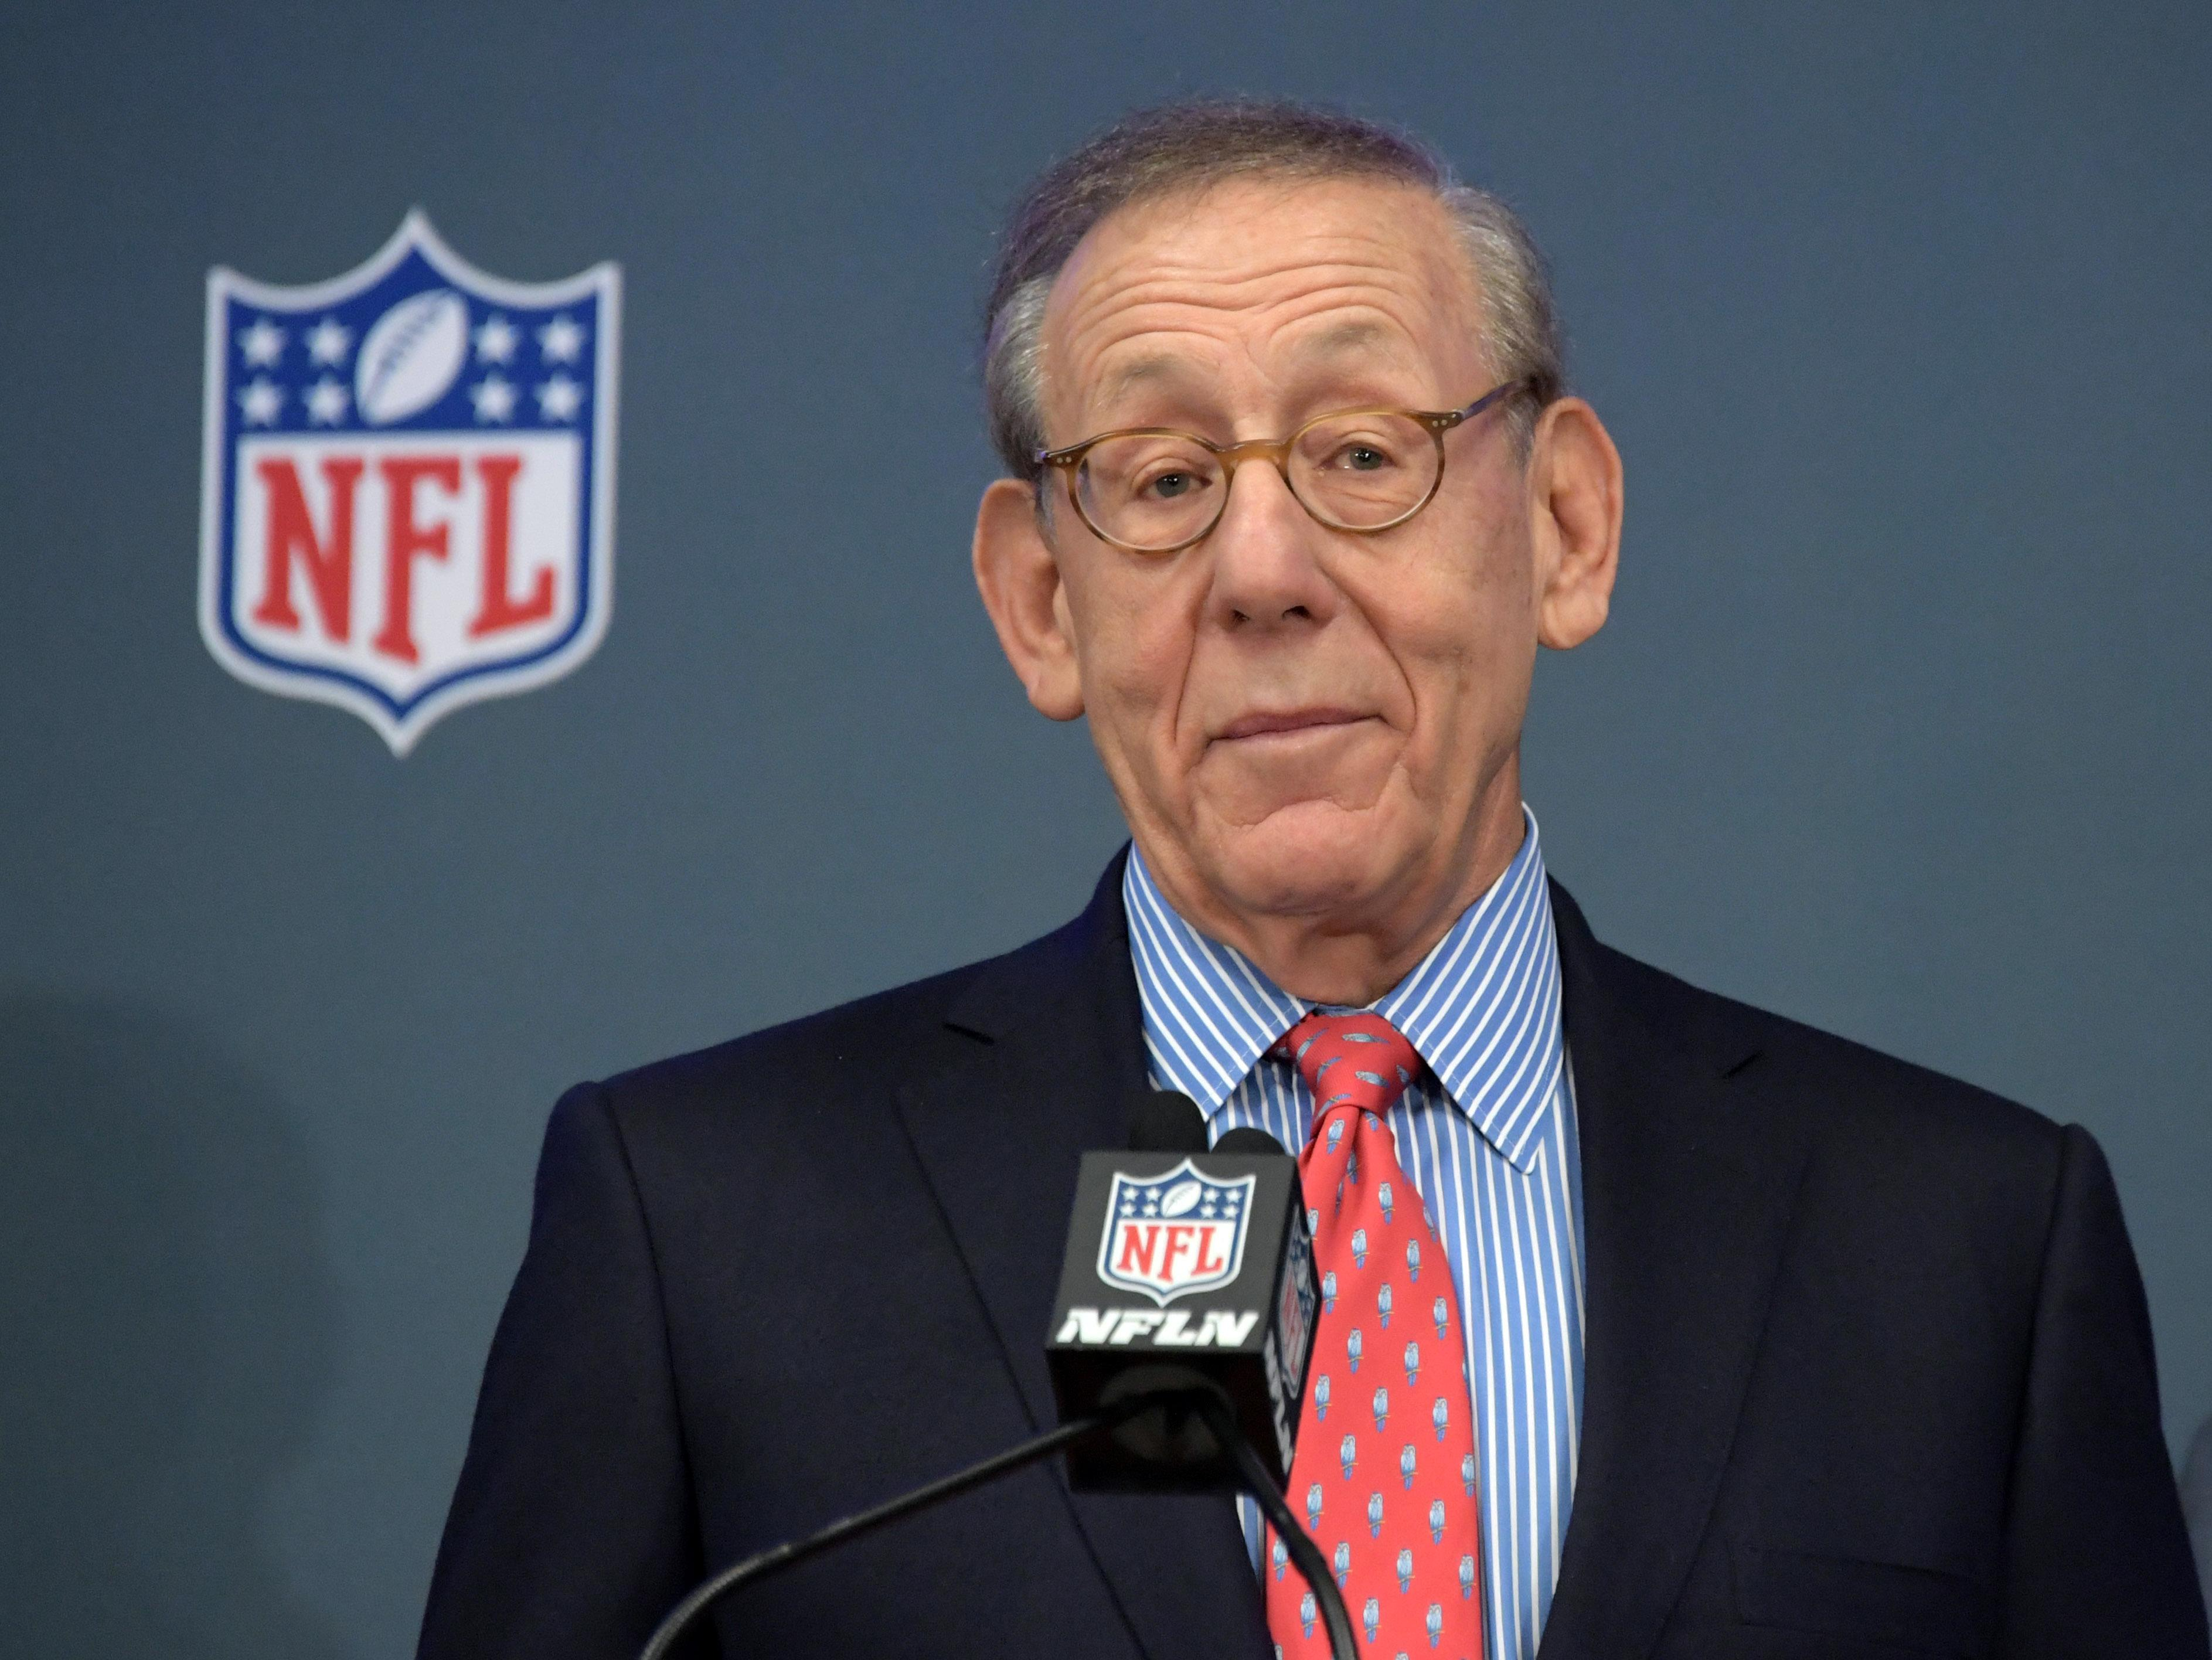 Miami Dolphins owner Stephen Ross on NFL protests: 'Trump made it about the military'